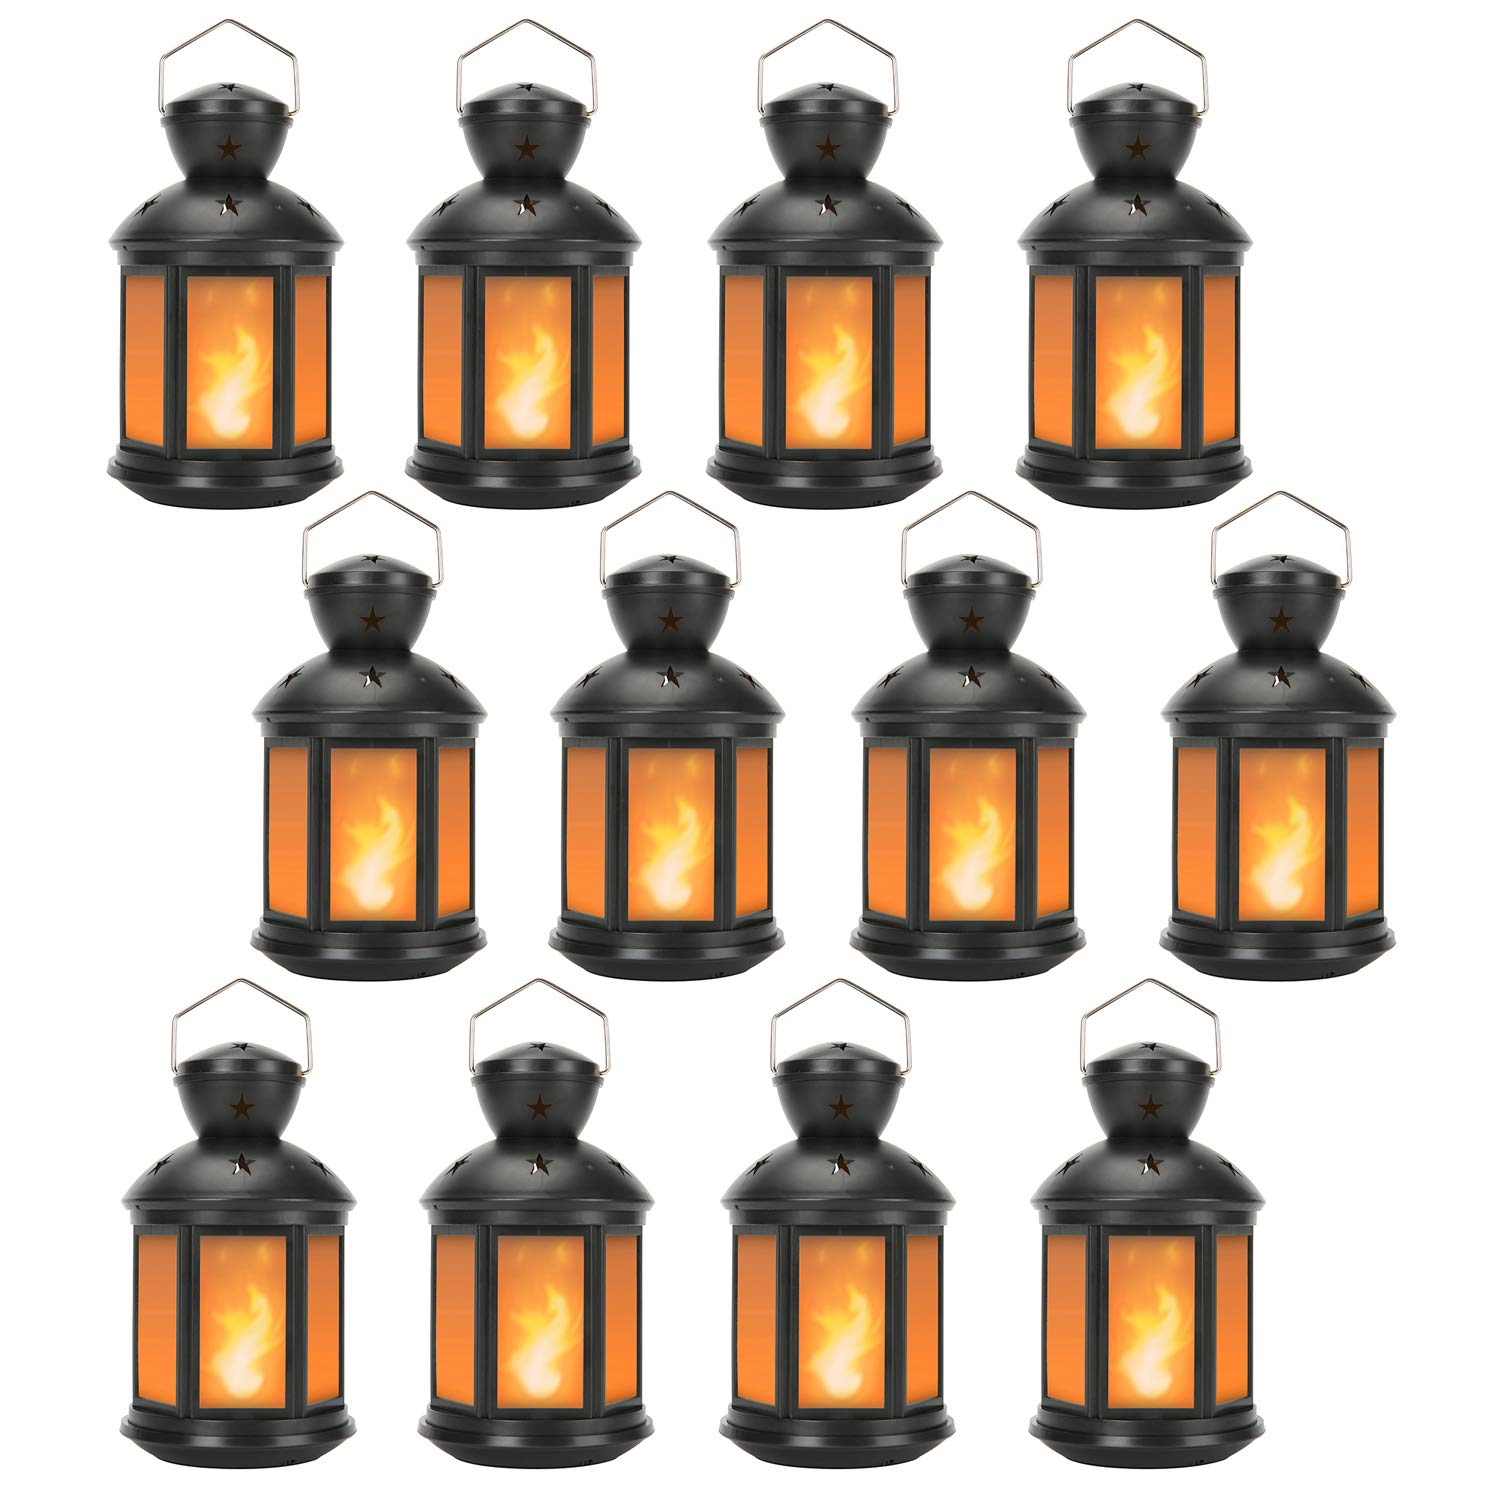 Decorative Lanterns Battery Powered LED, with 6 Hours Timer,Indoor/Outdoor,Lanterns Decorative for Wedding,Parties,Black-12pcs